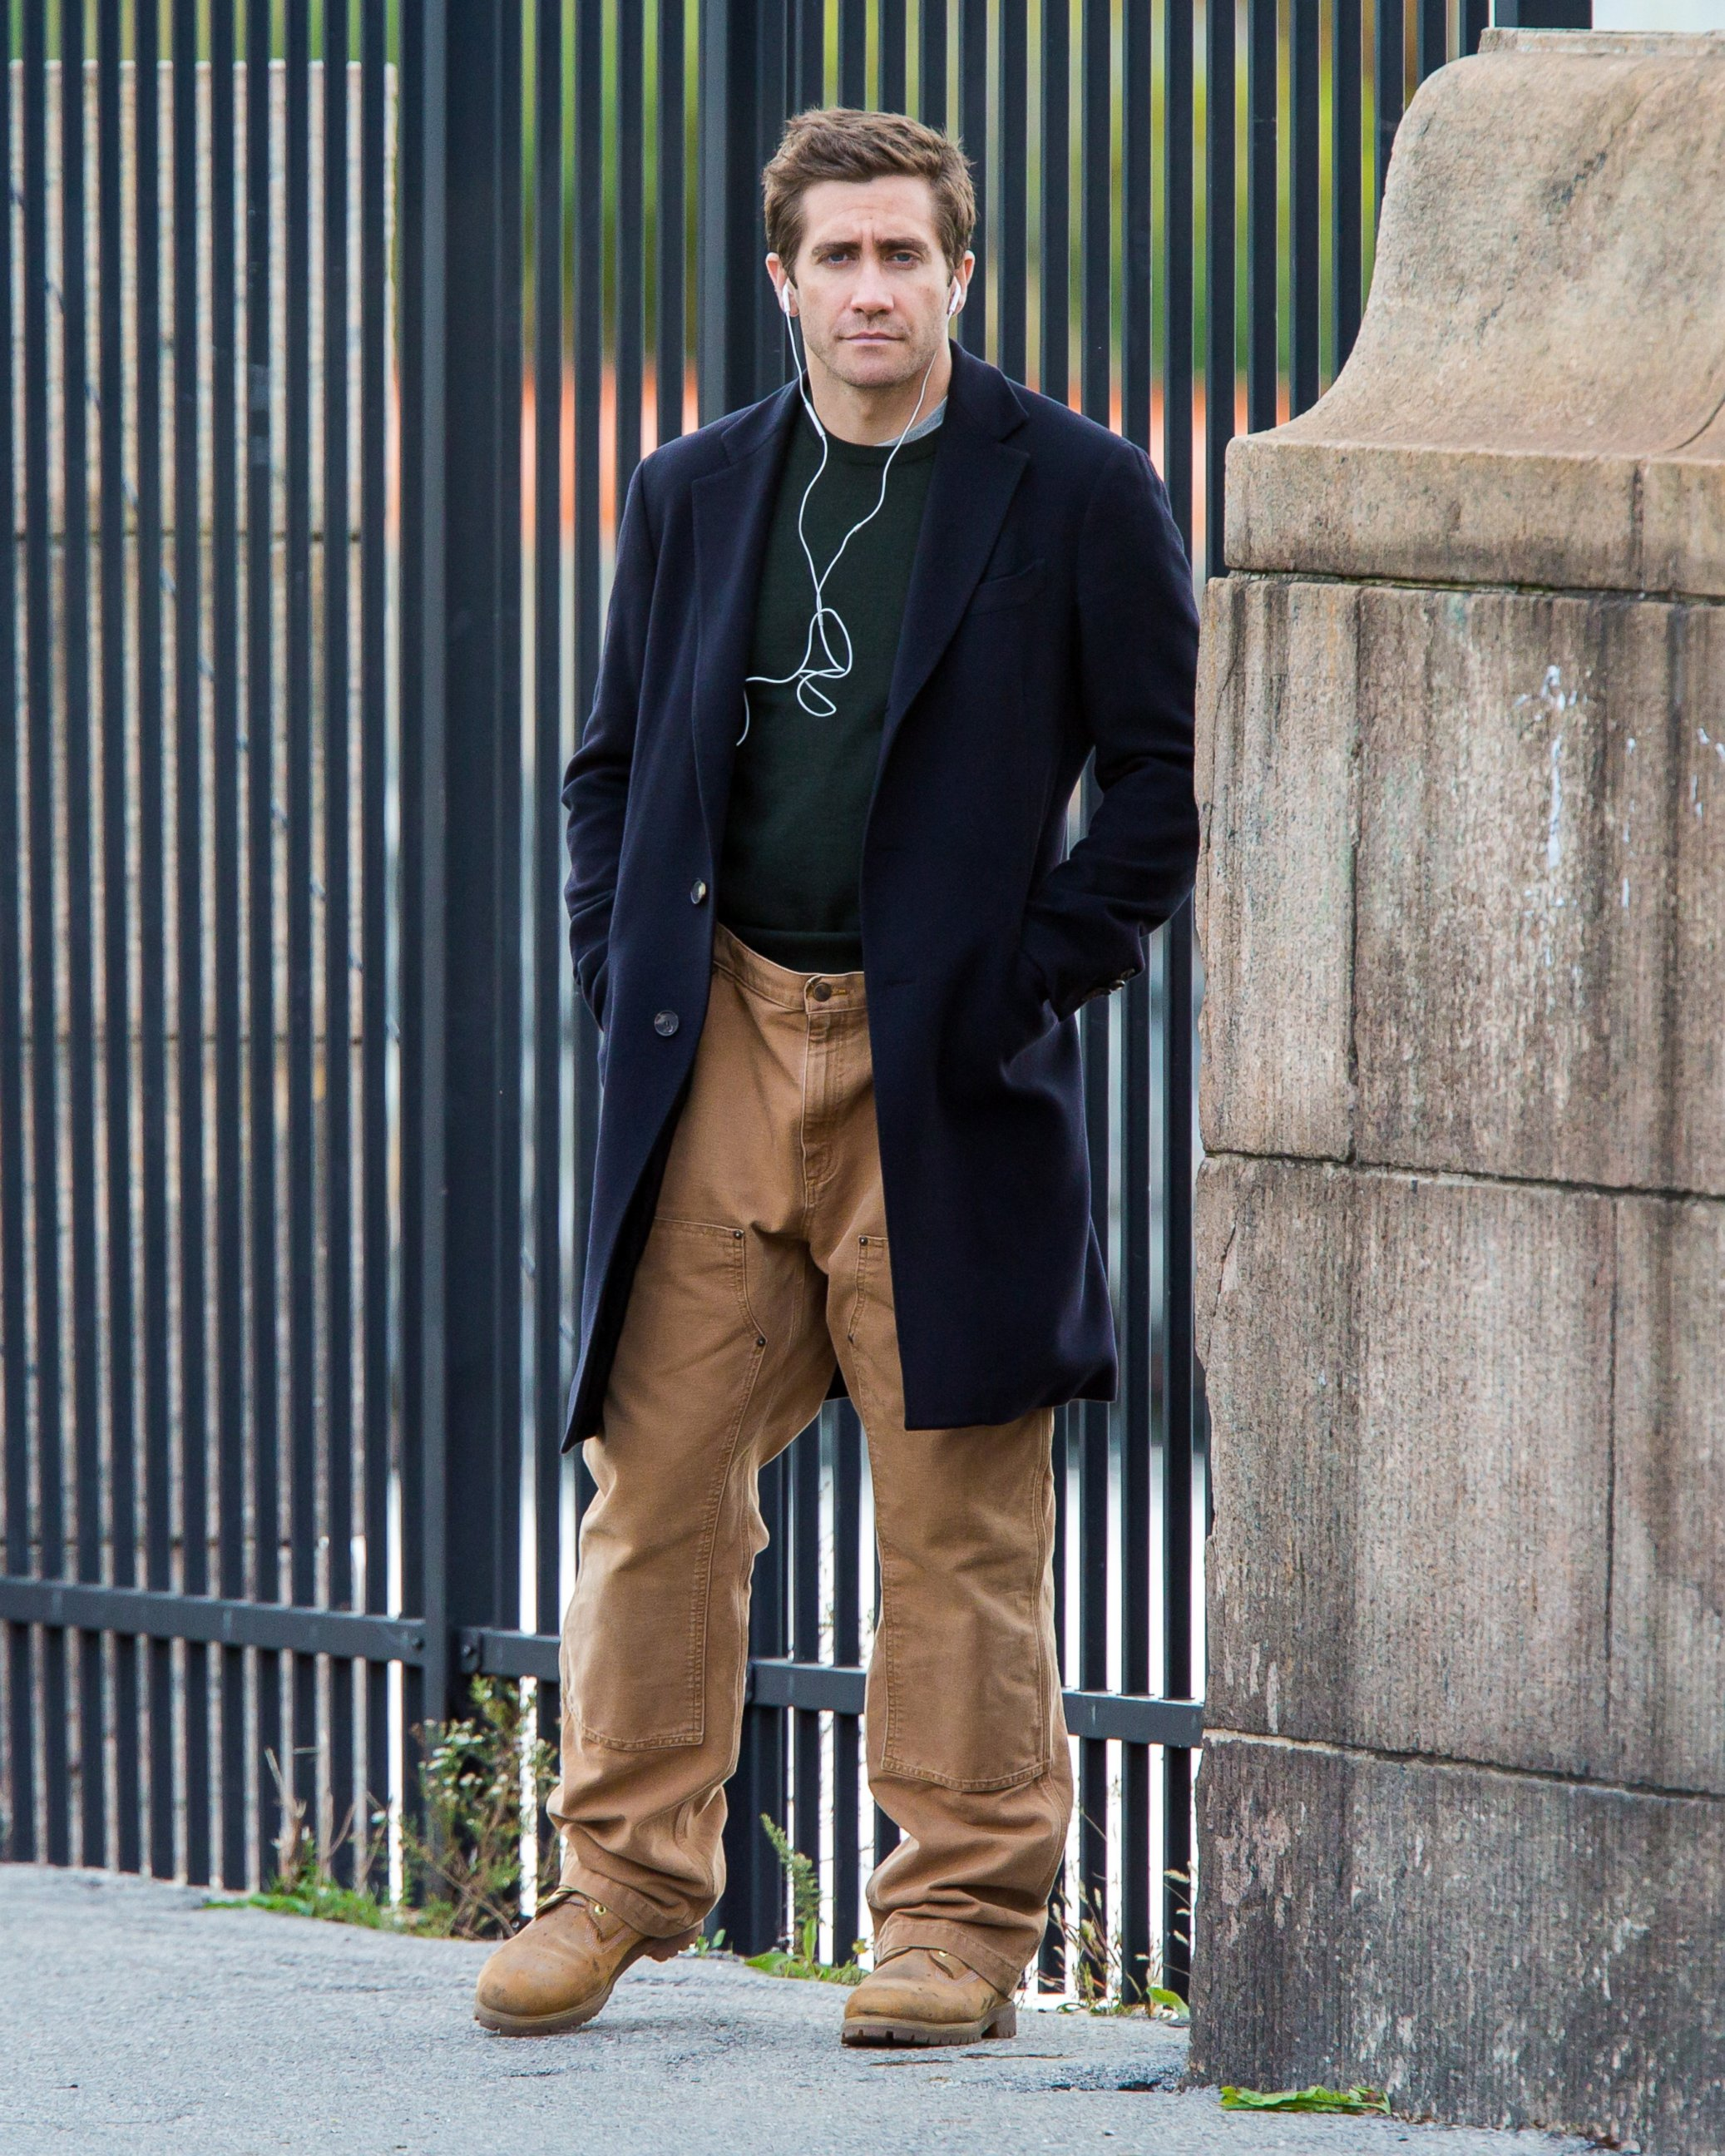 Jake Gyllenhaal Heads Back to Work on a New Film